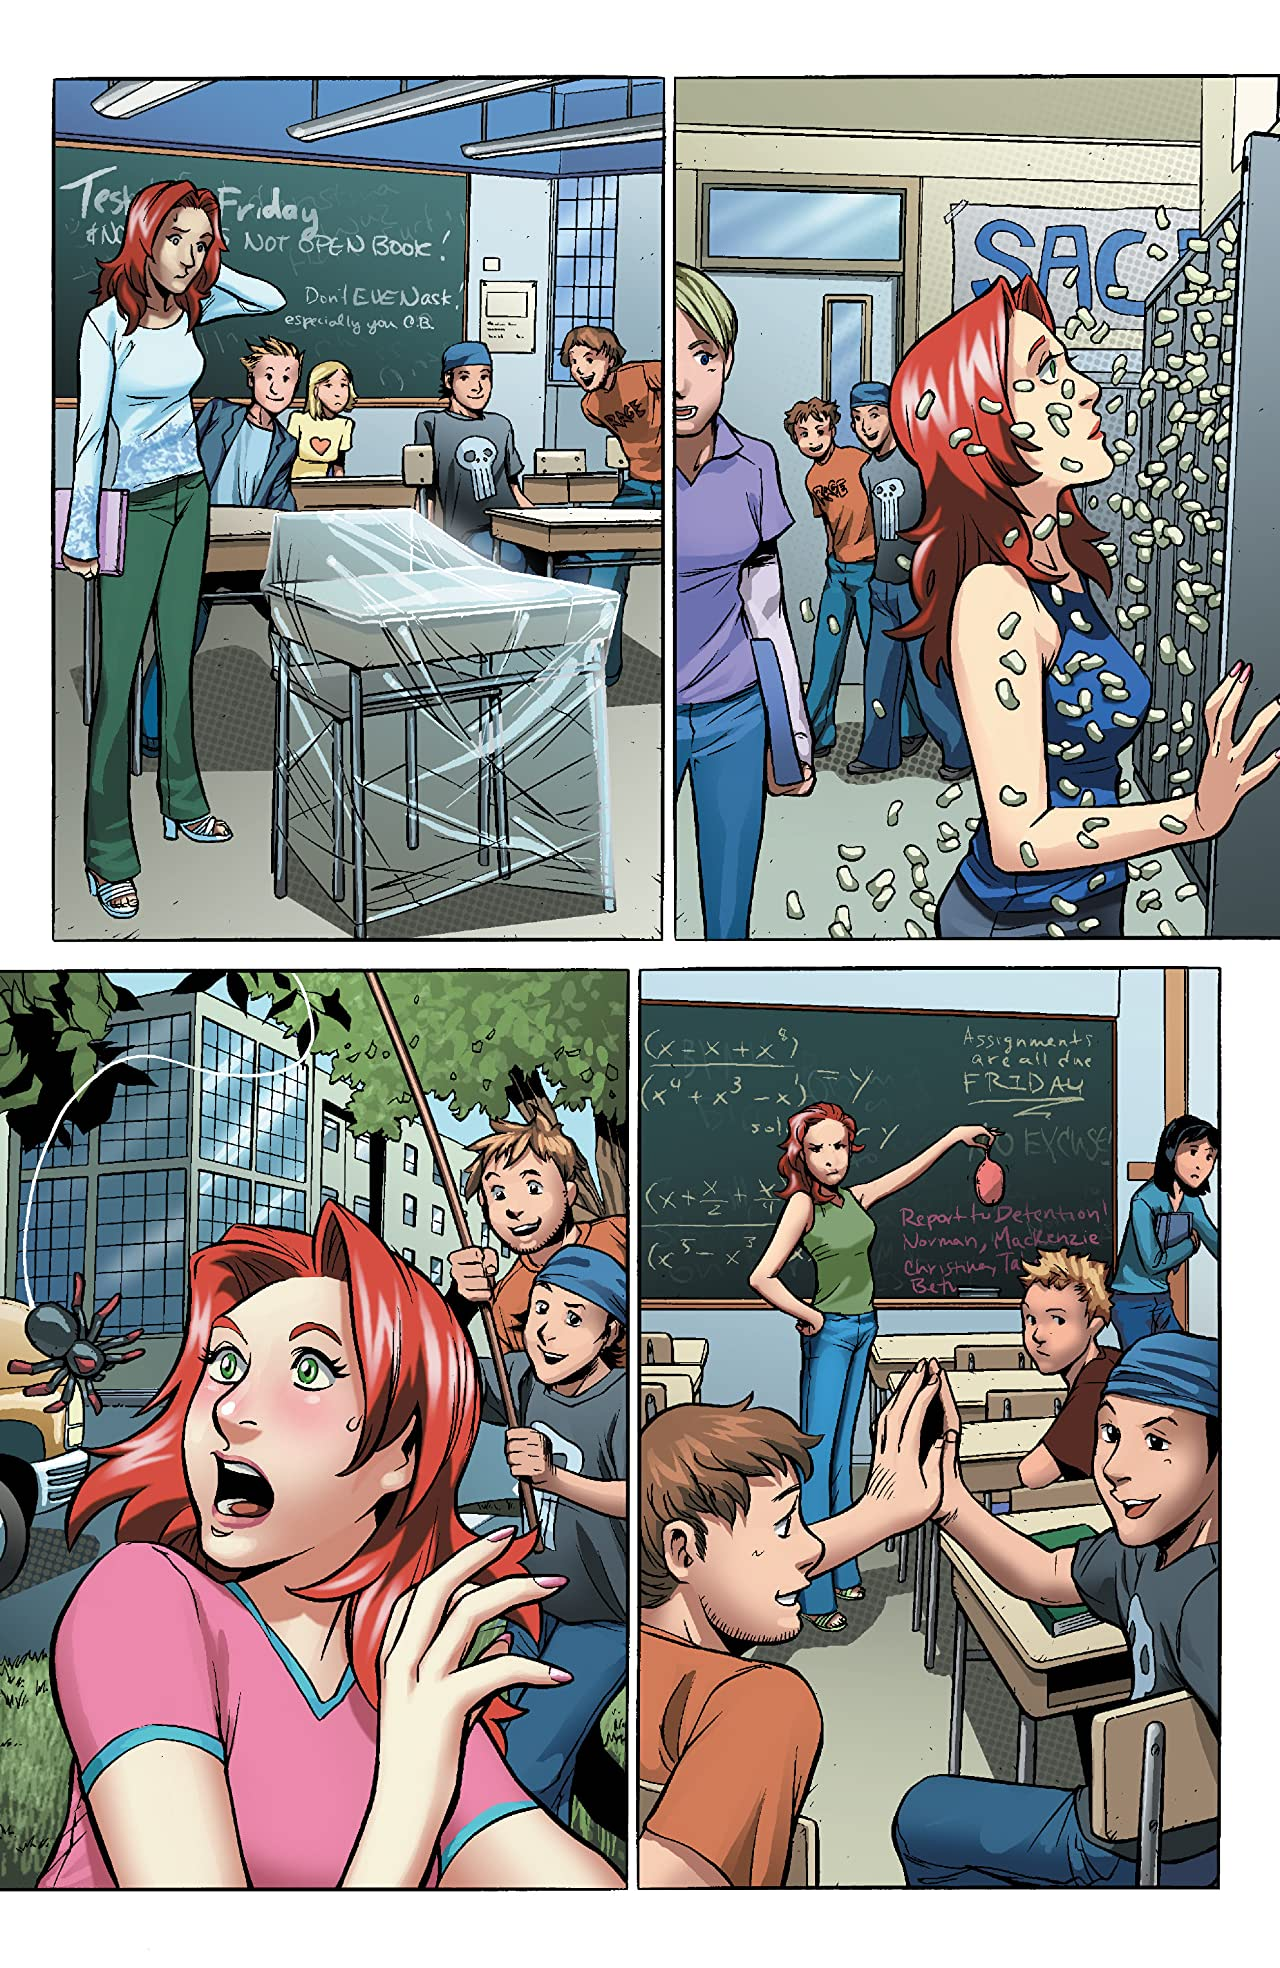 Mary Jane (2004) #3 (of 4)